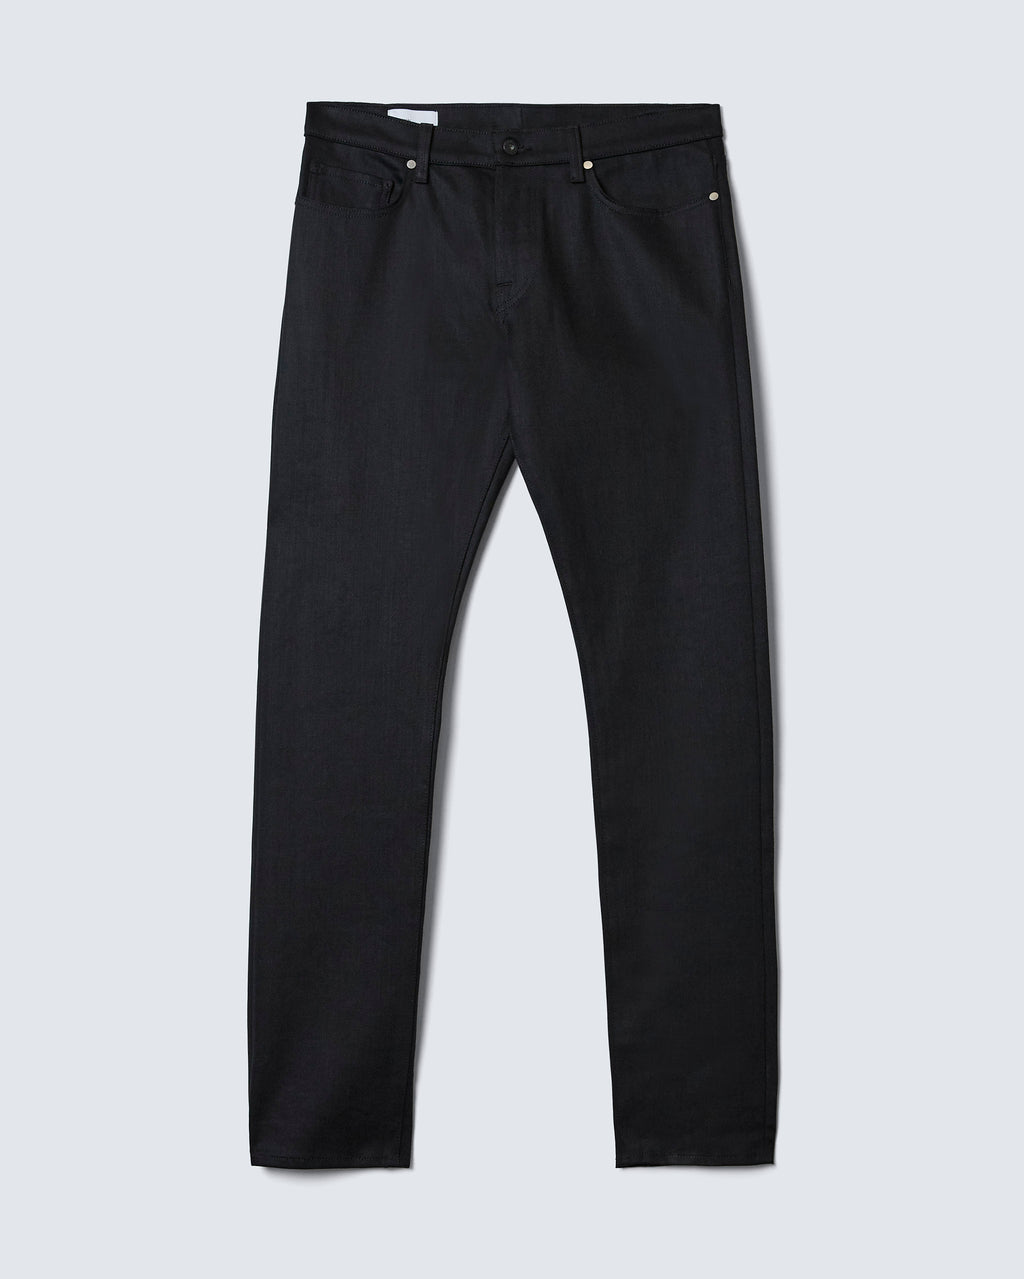 The Modern Slim in Black Stretch Selvage